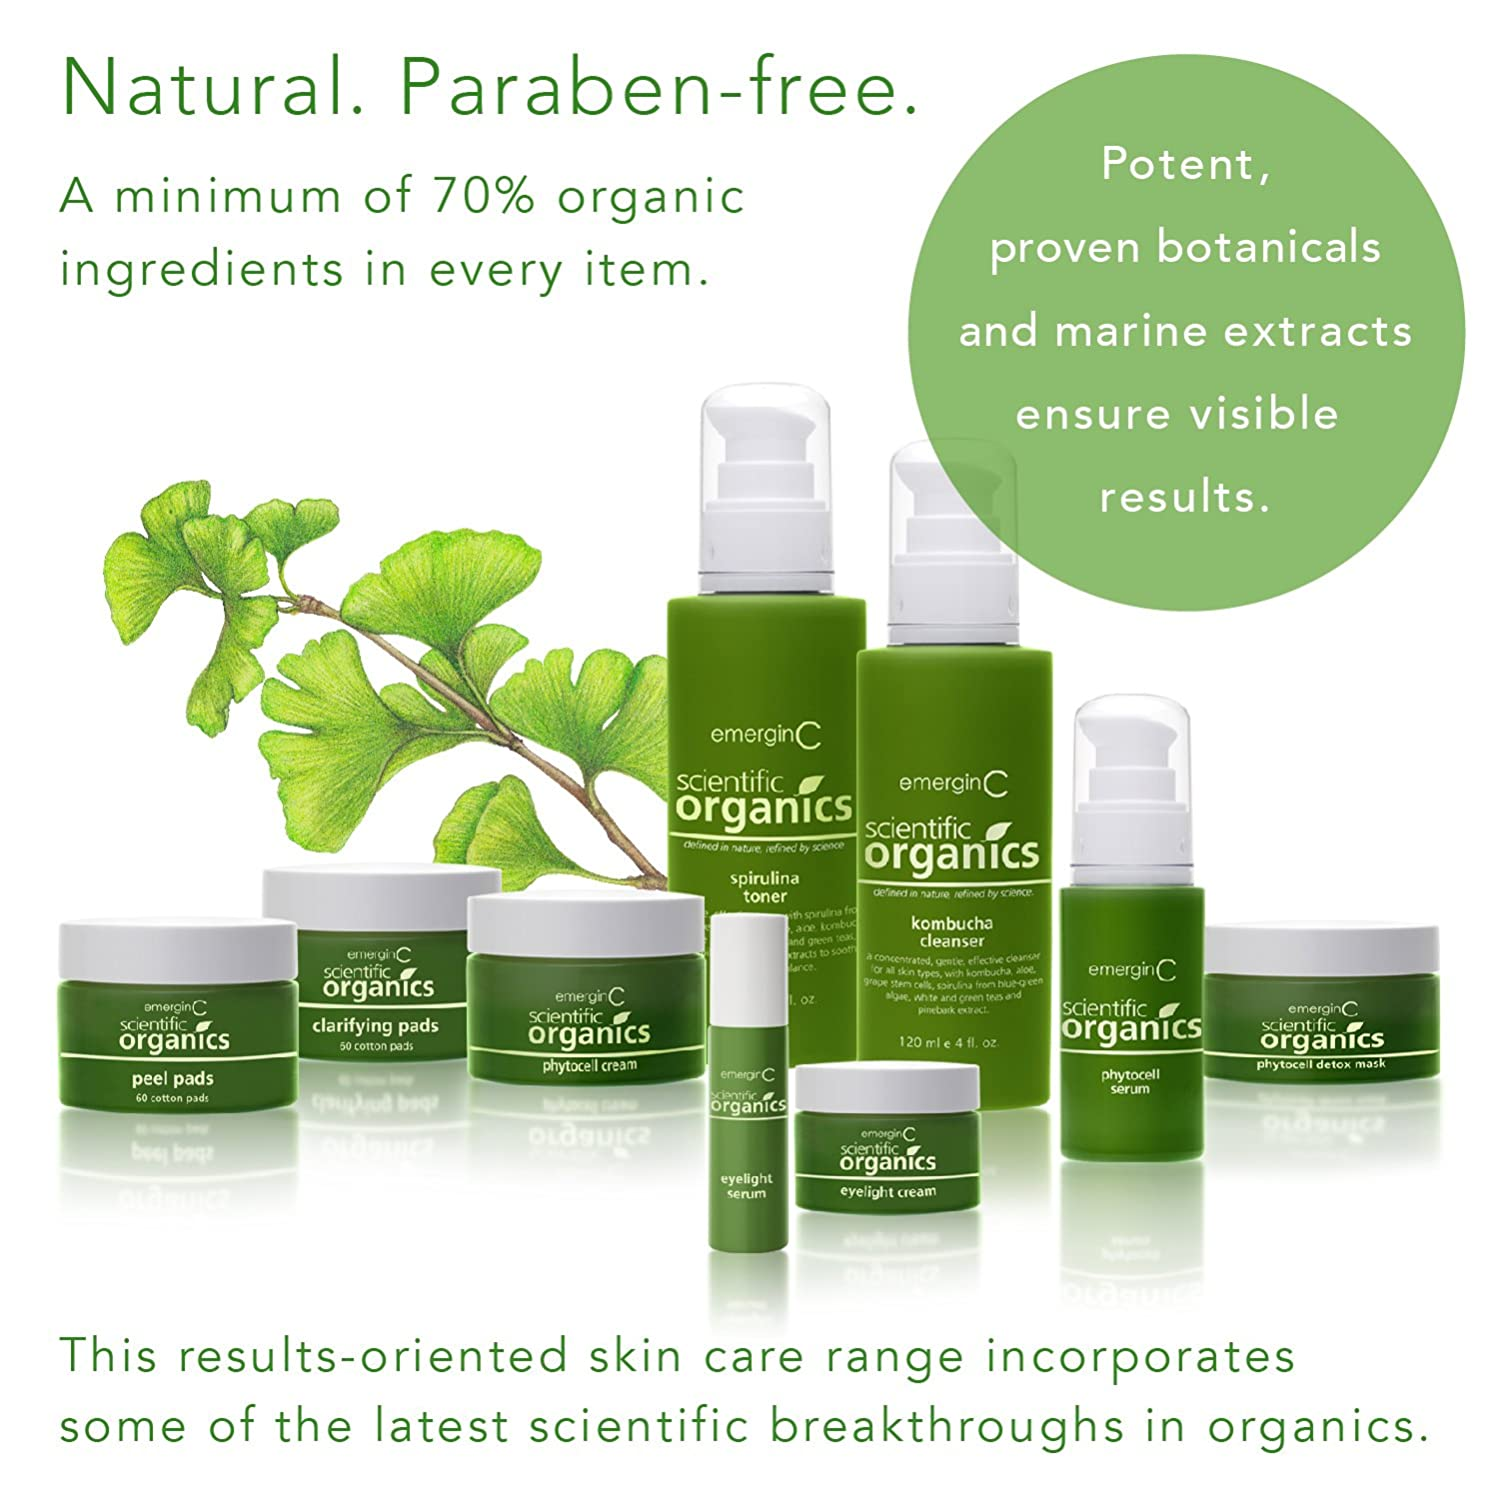 Amazon.com: emerginC Scientific Organics - Natural Skin Care Trial/Travel Set (6 items): Beauty